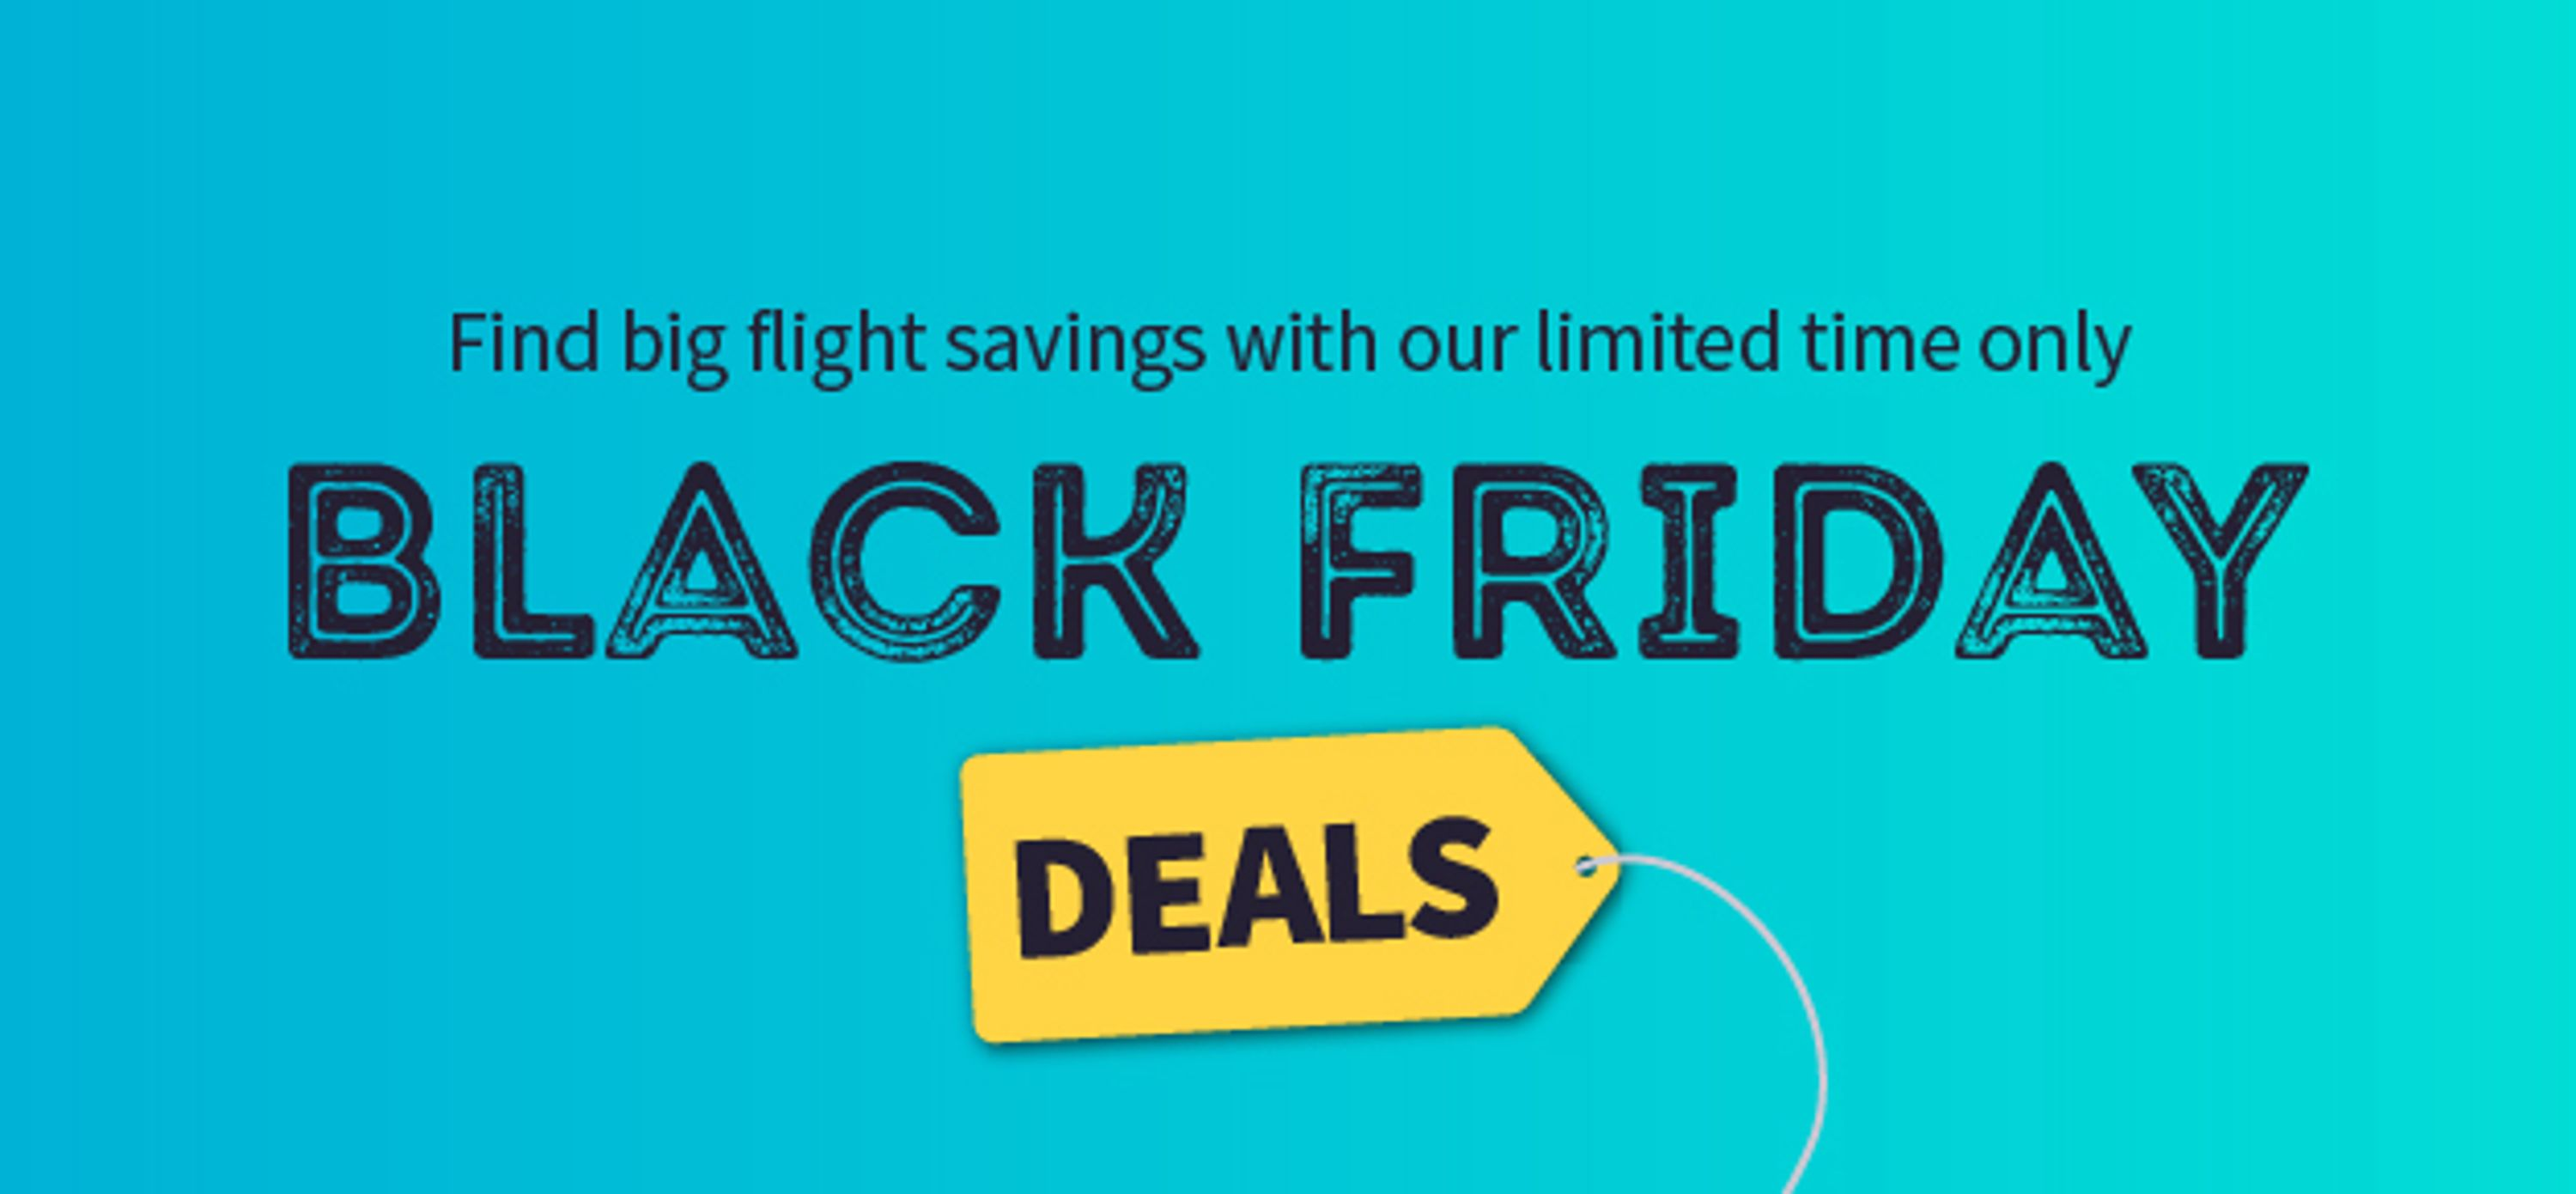 Black Friday Flight Deals - Skyscanner 2017-11-24 16:08